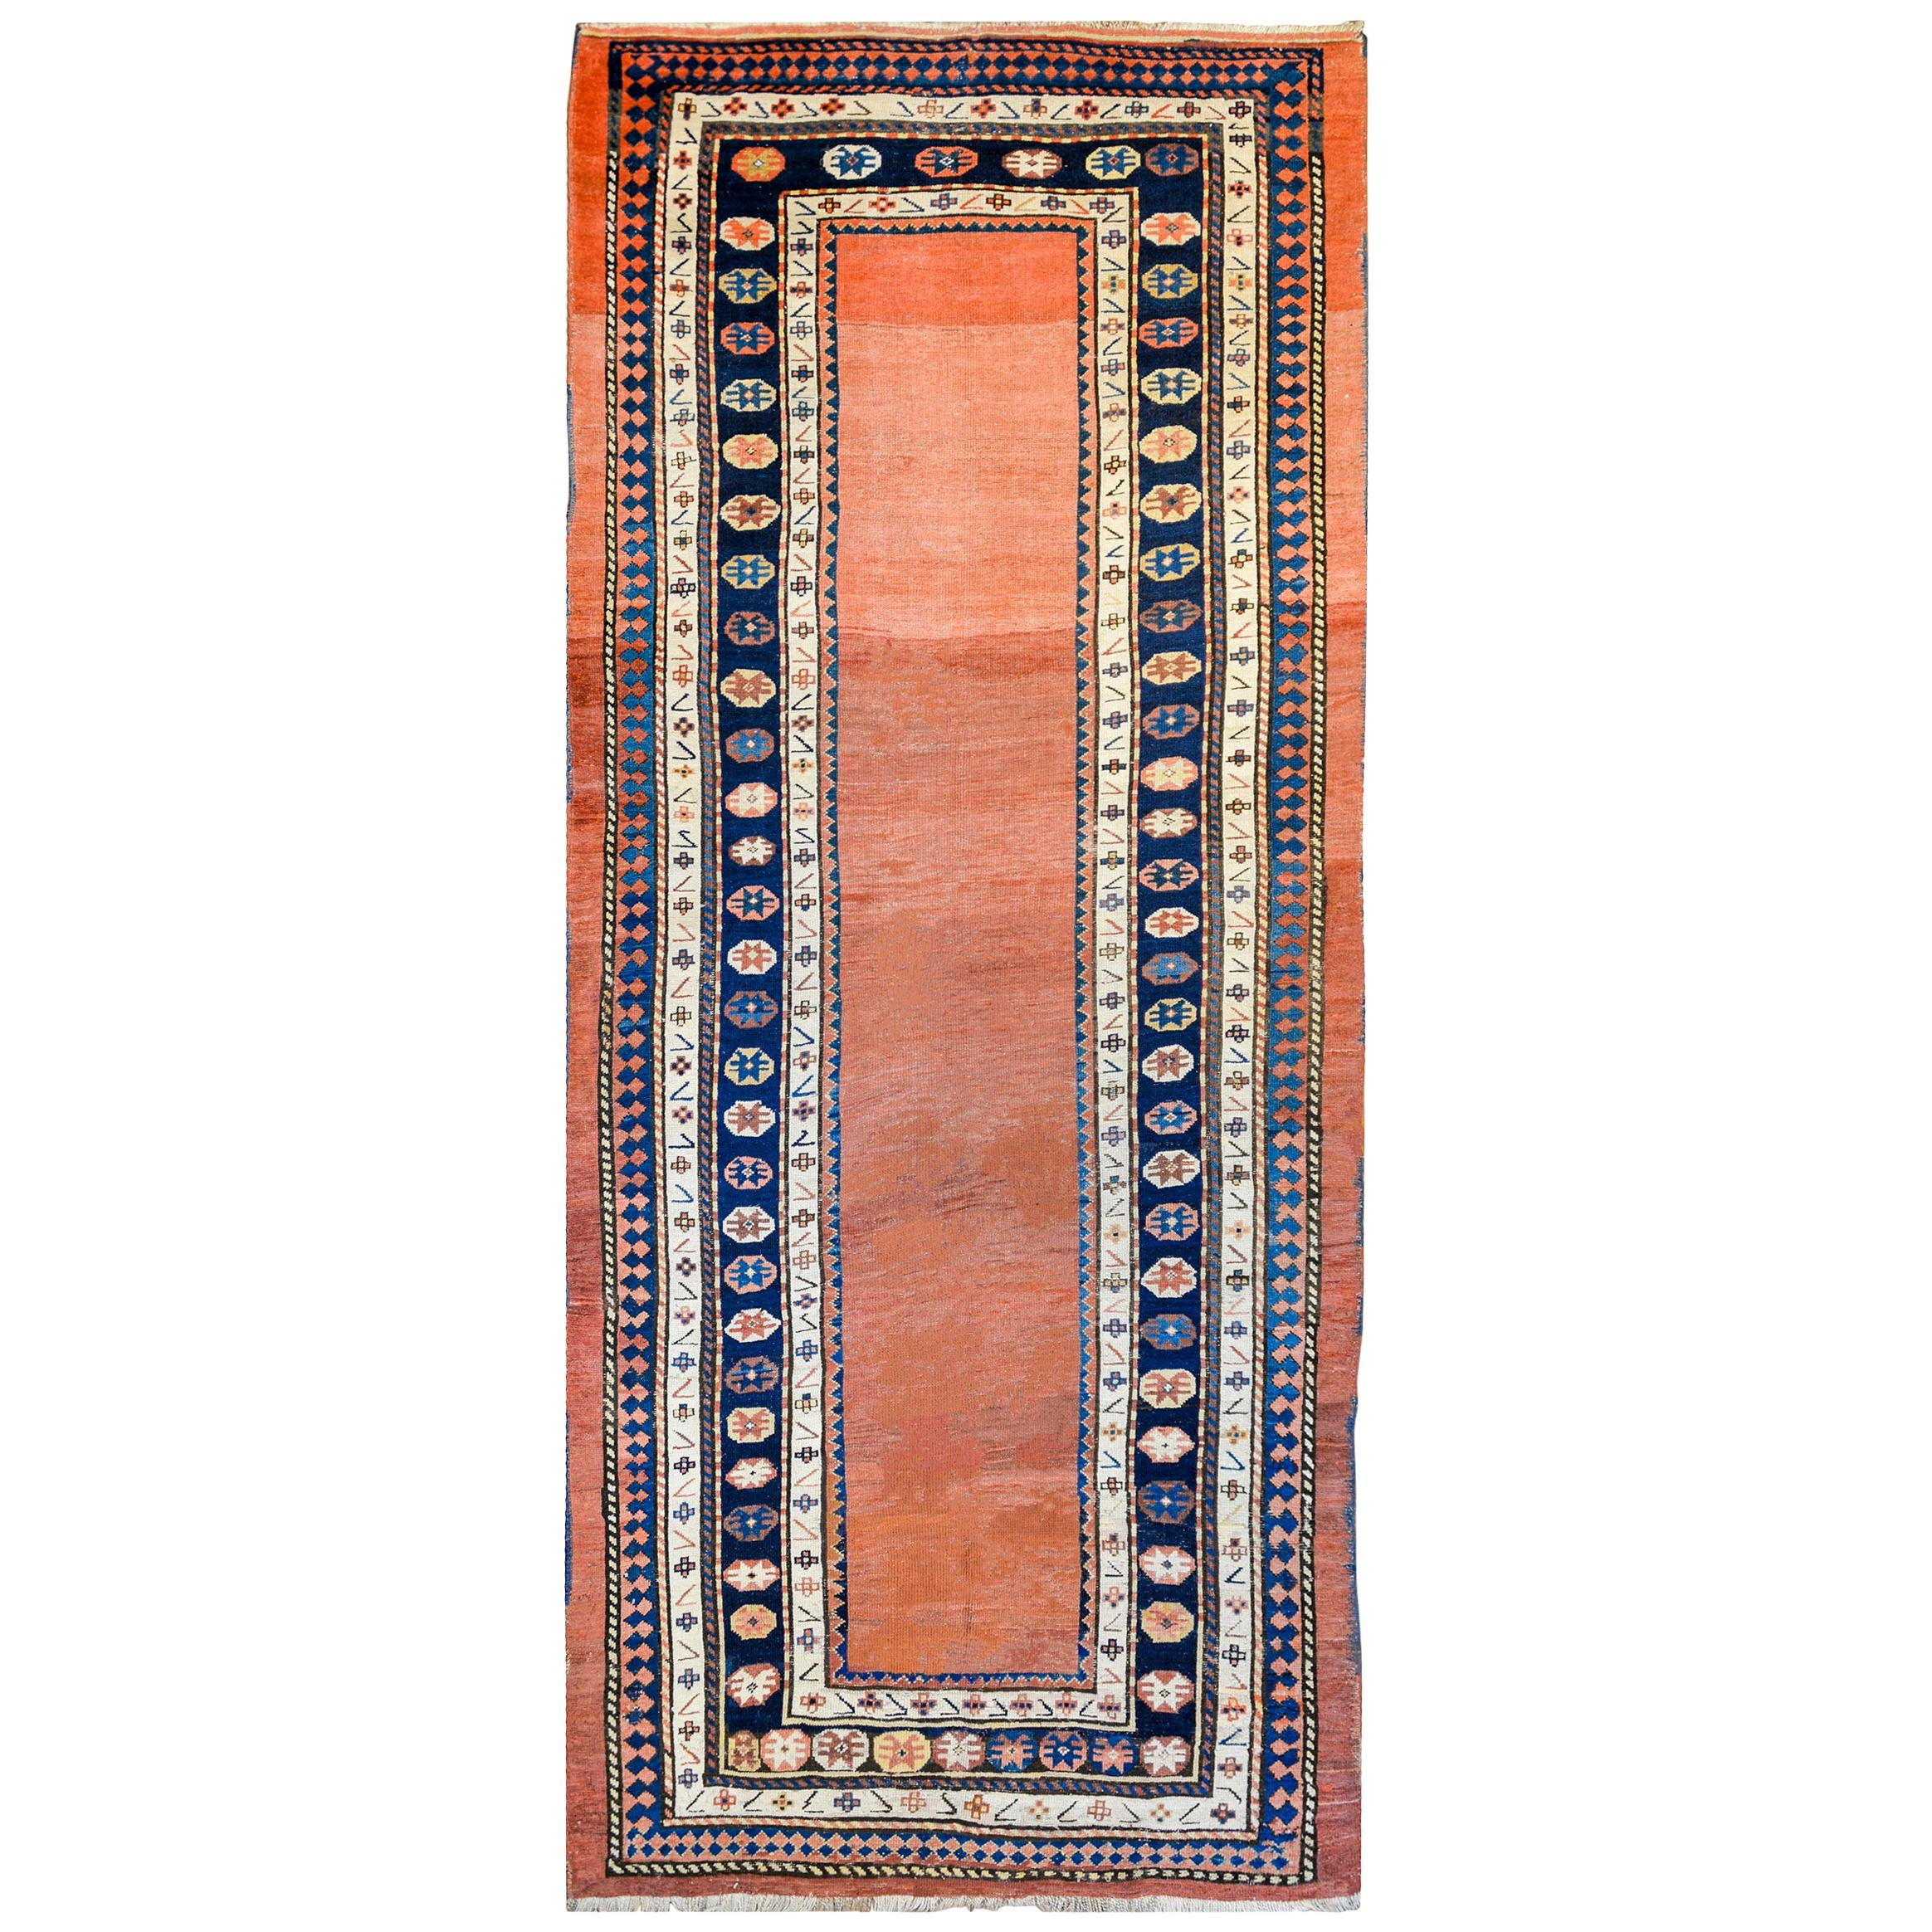 Outstanding 19th Century Talish Rug